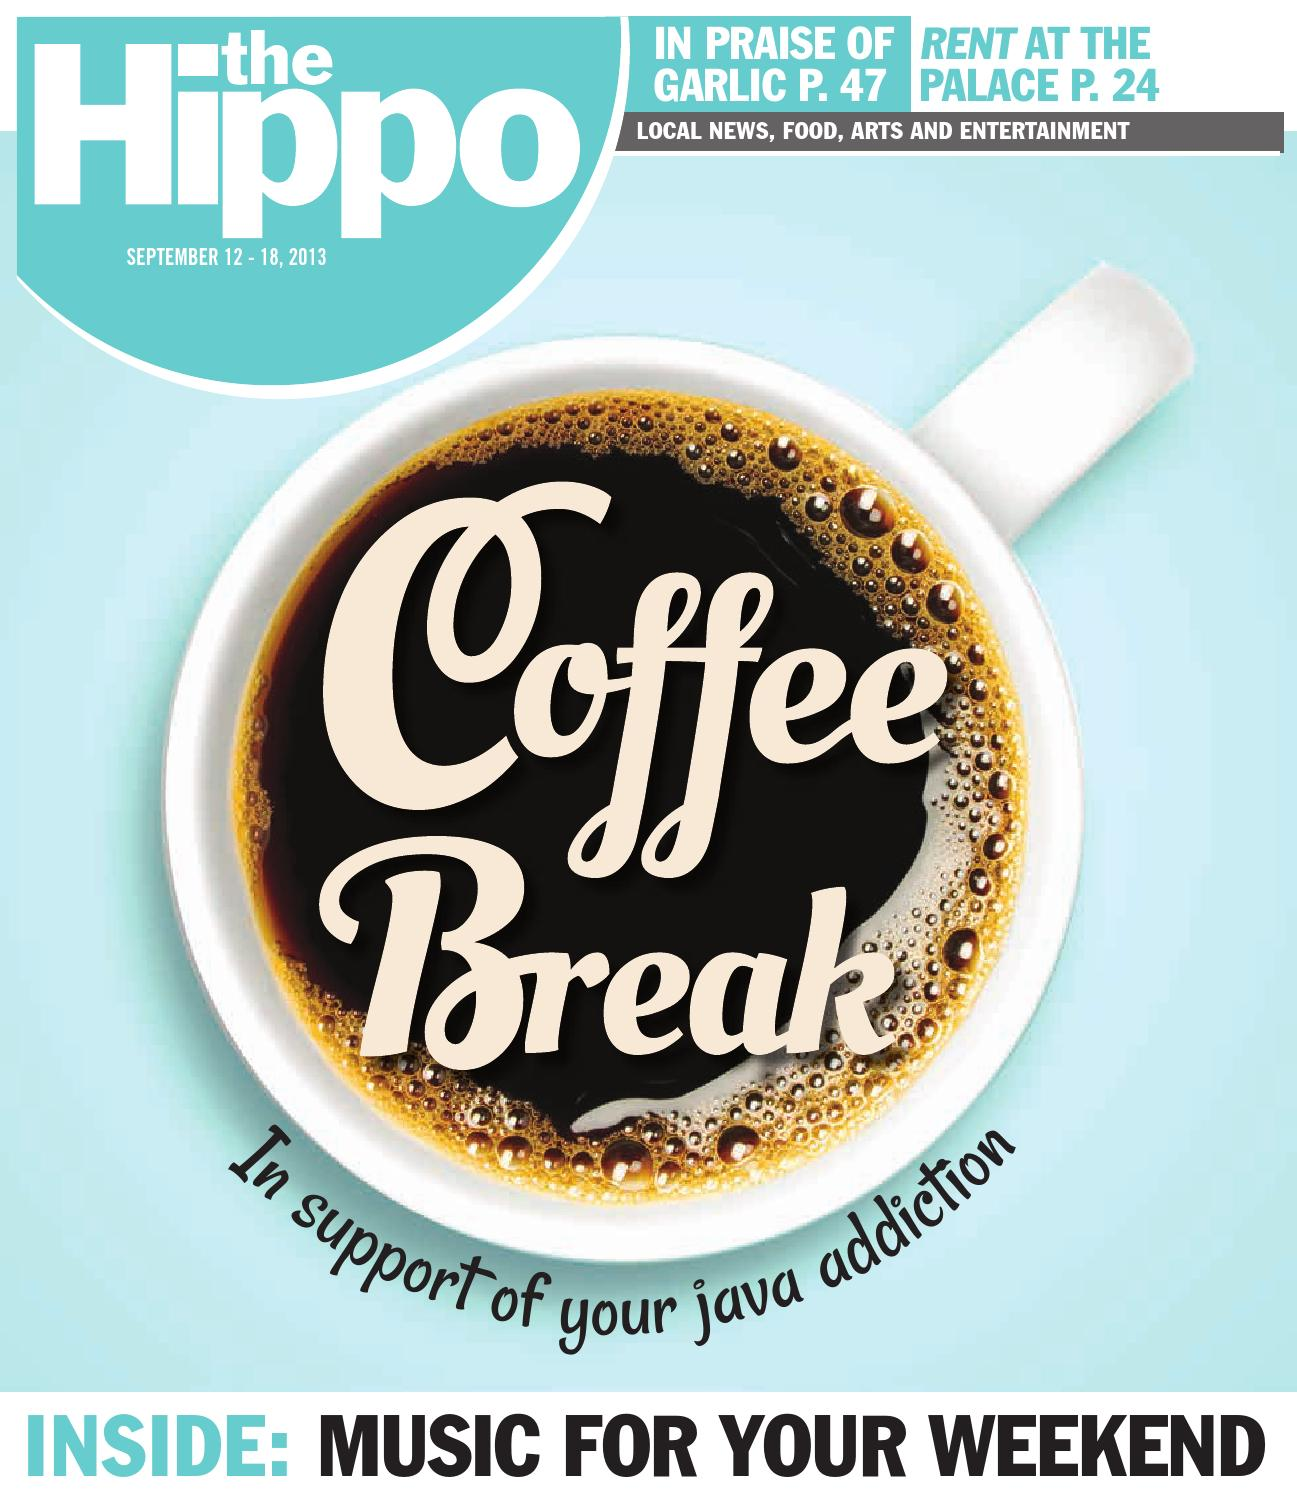 Hippo 09 11 13 by The Hippo issuu